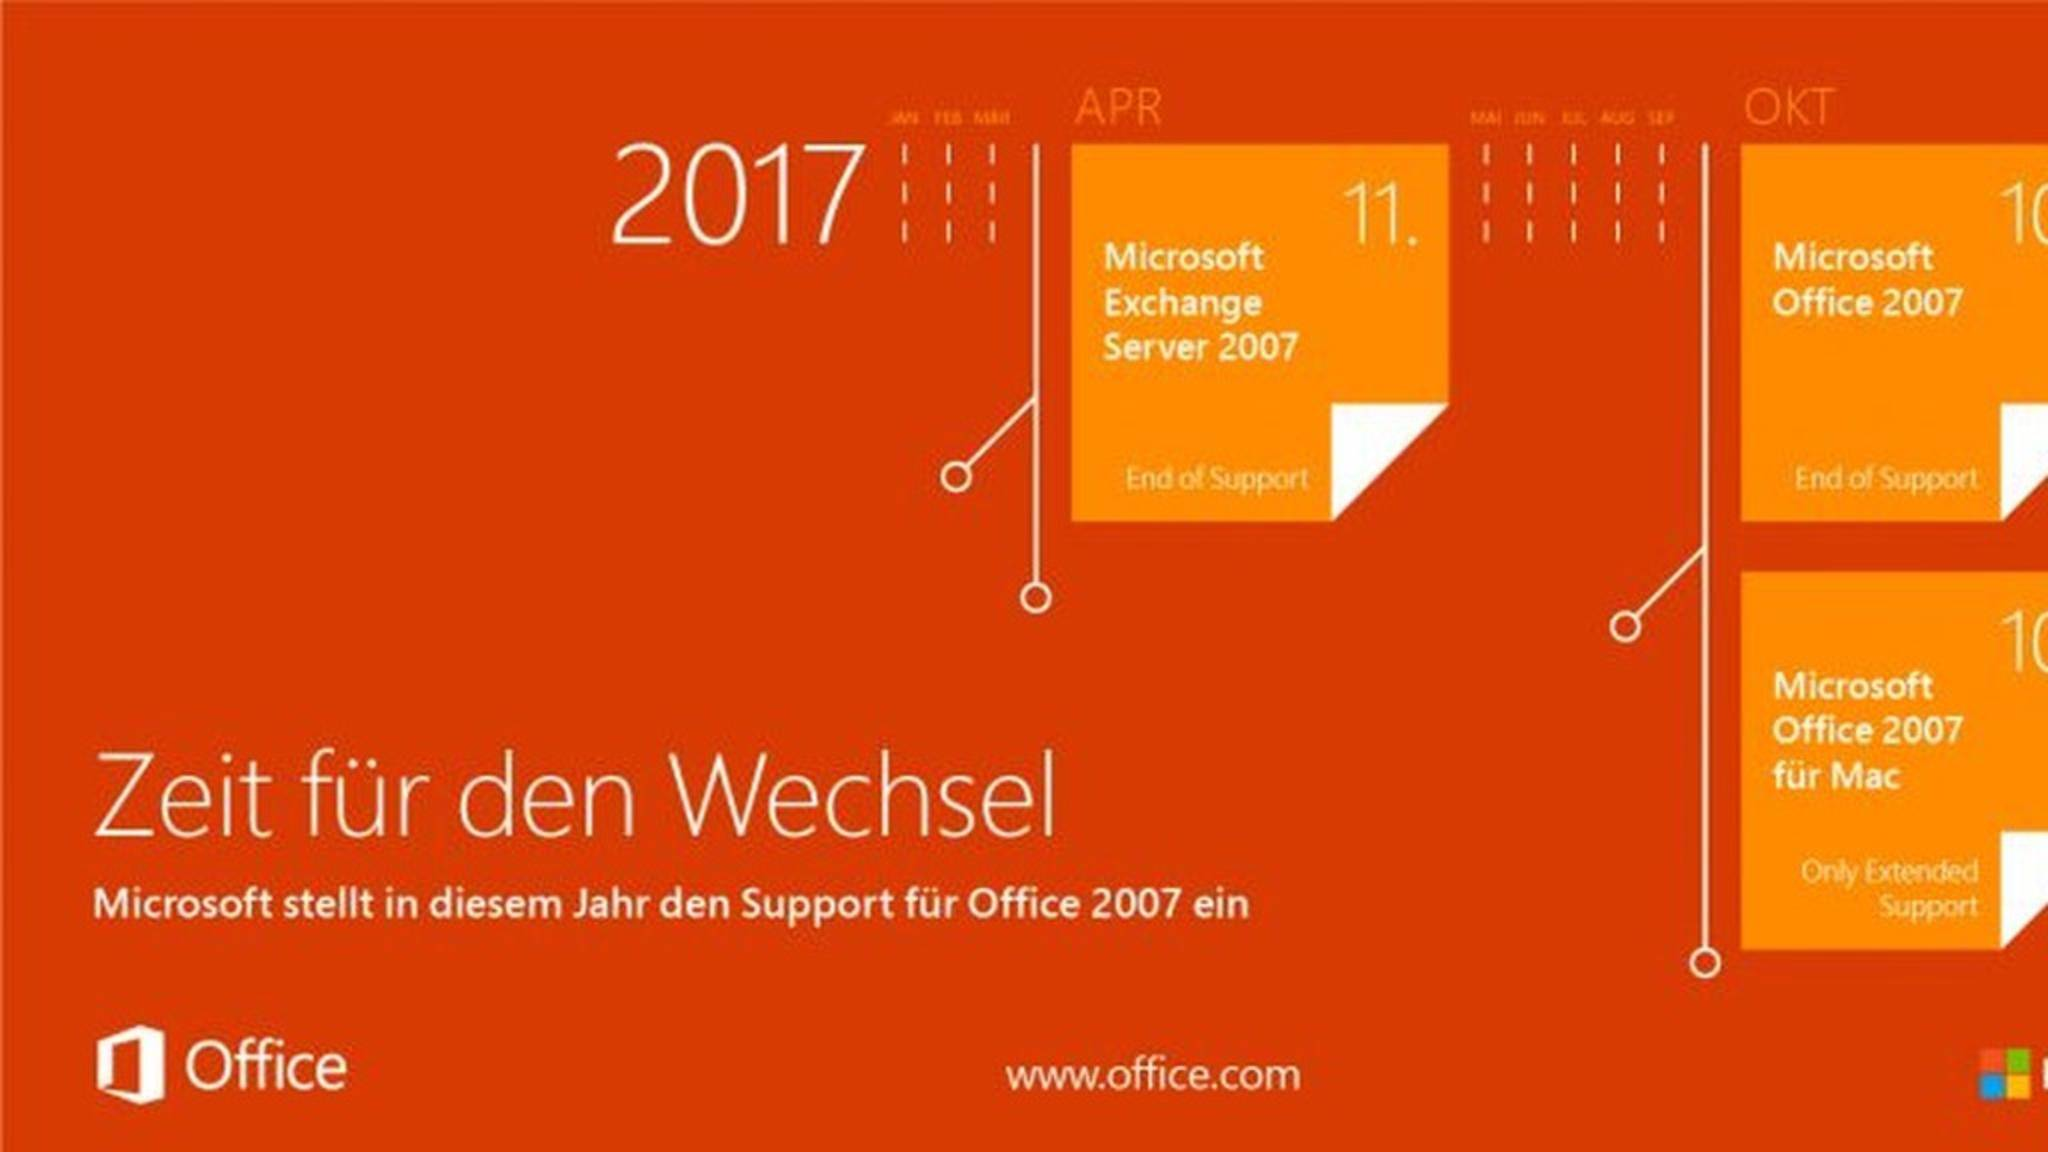 Office 2007 Support endet